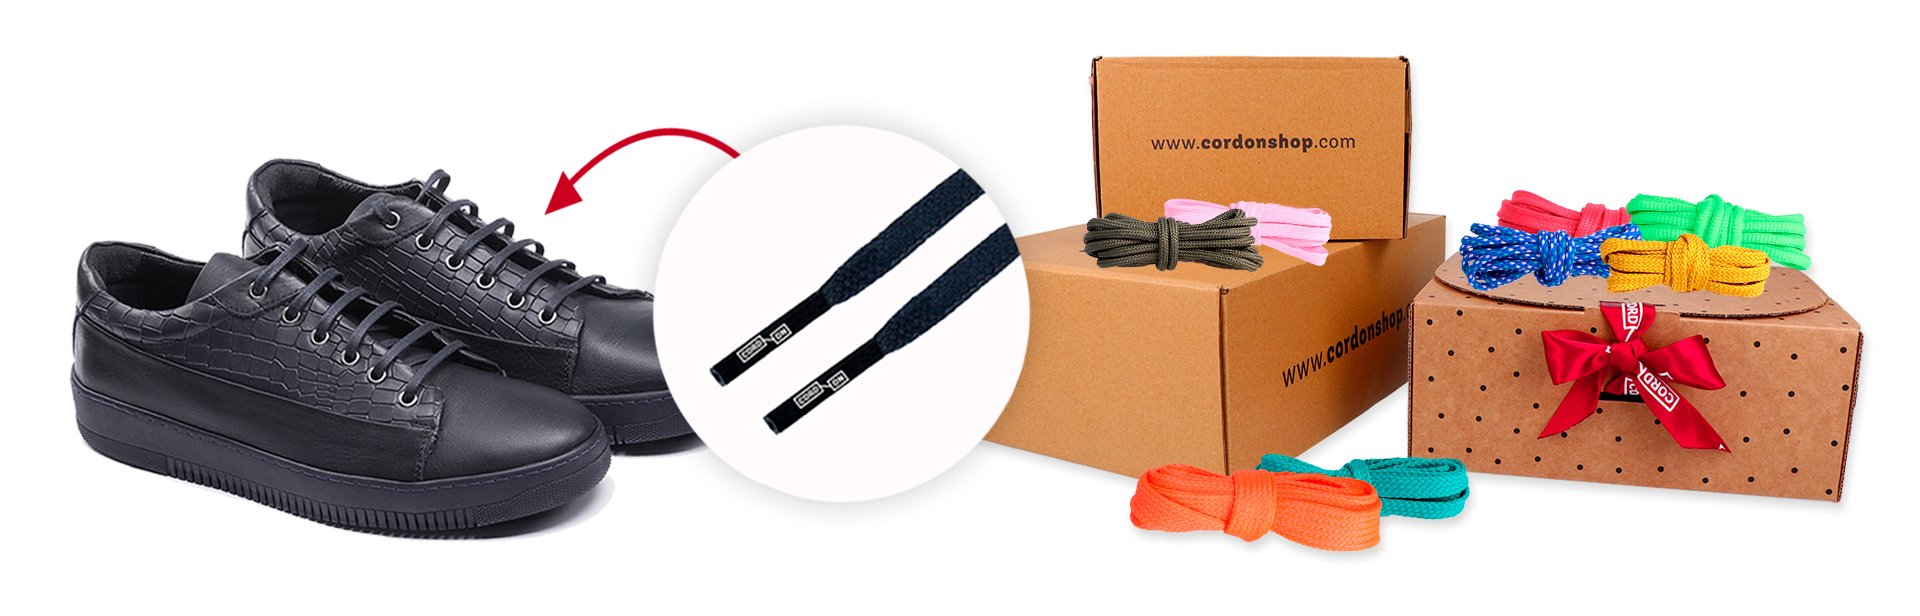 Do you need a new pair of shoelaces? Cord-On Shop is your place